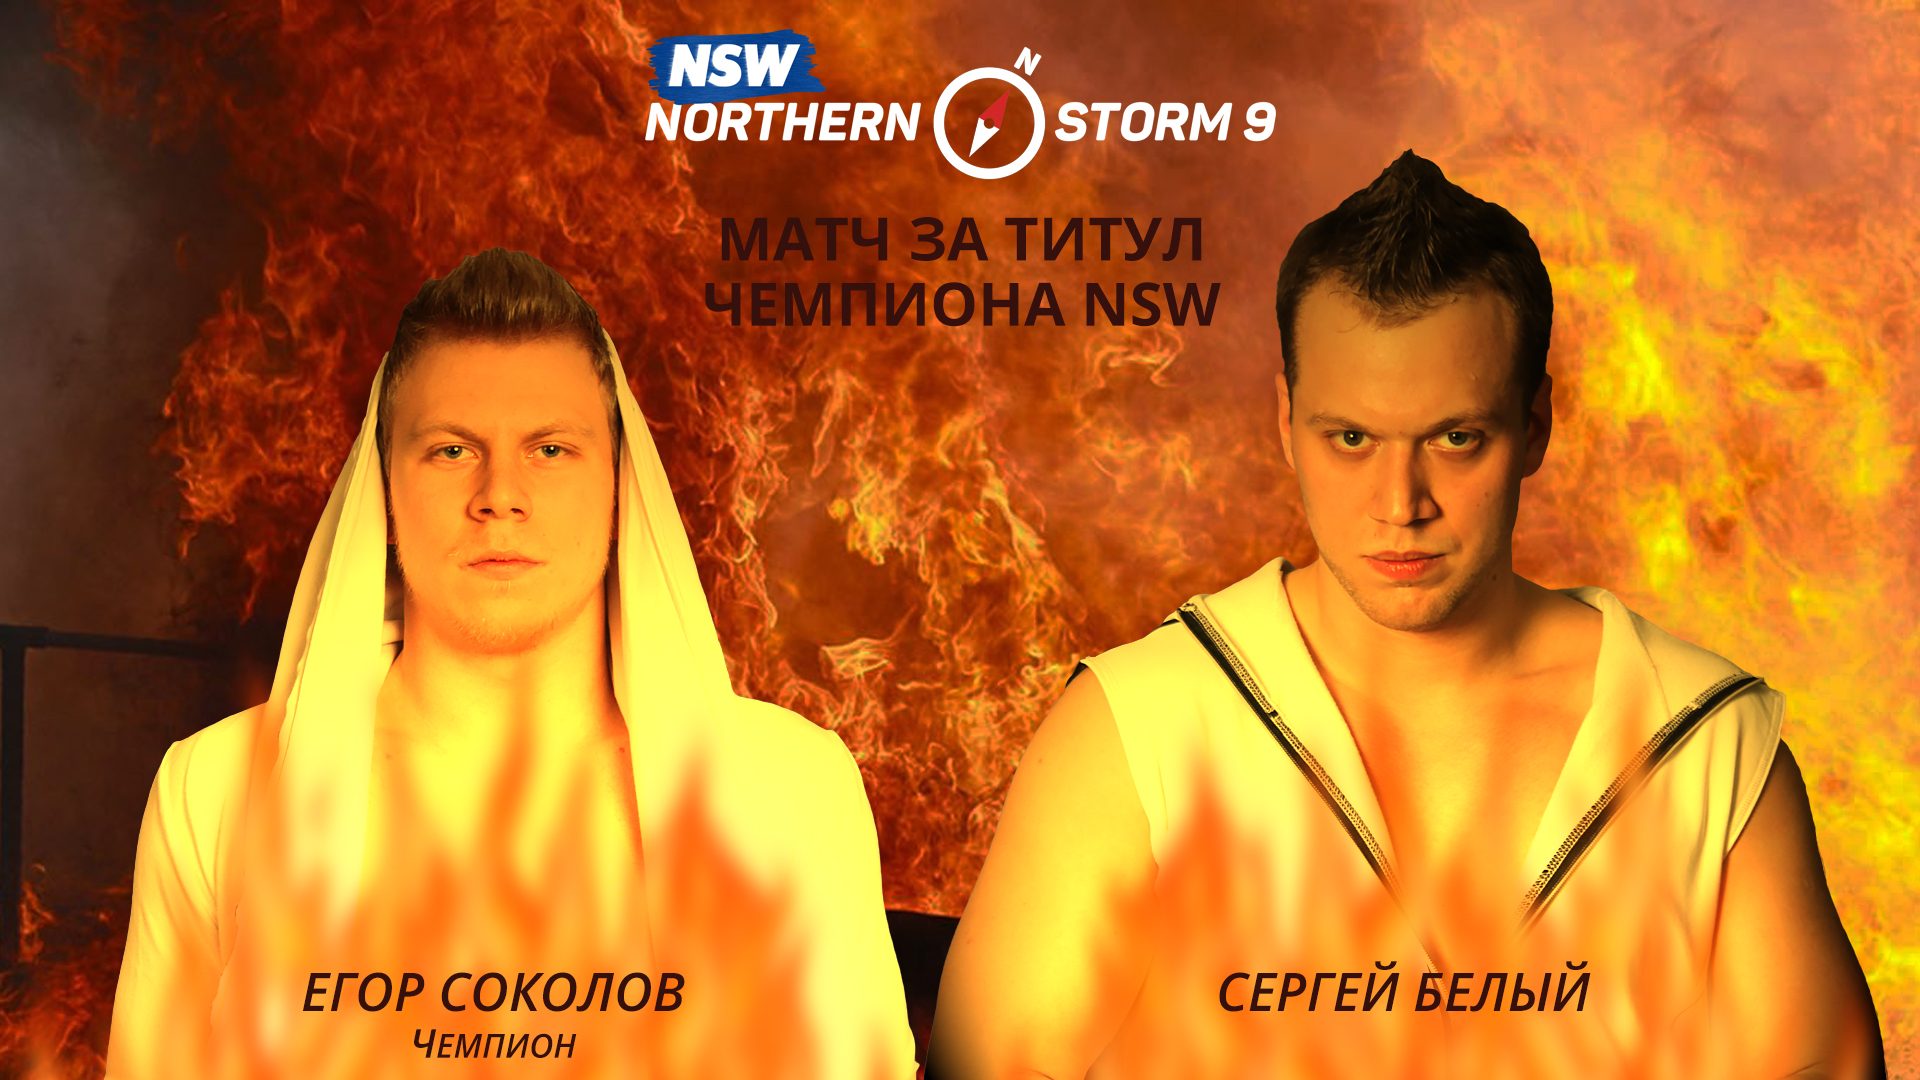 NSW Northern Storm 9: Егор Соколов (ч) против Сергея Белого